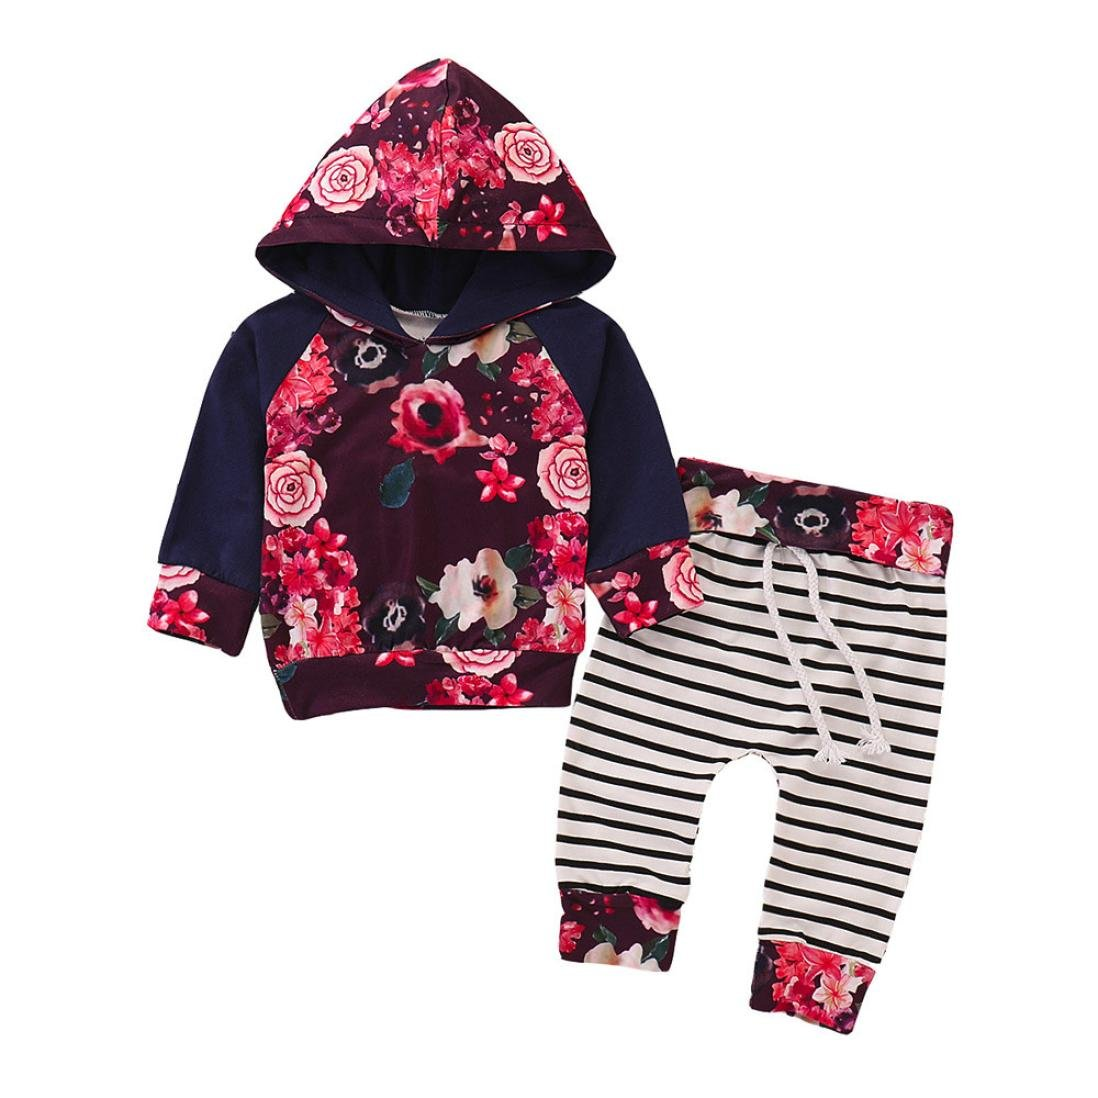 Clearance Sale! Baby Sweatshirt Set Halloween, Iuhan Newborn Baby Boys Girls Floral Hoodie Tops+Prin Striped Pants Clothes Sets (6Months, Navy) Iuhan ®